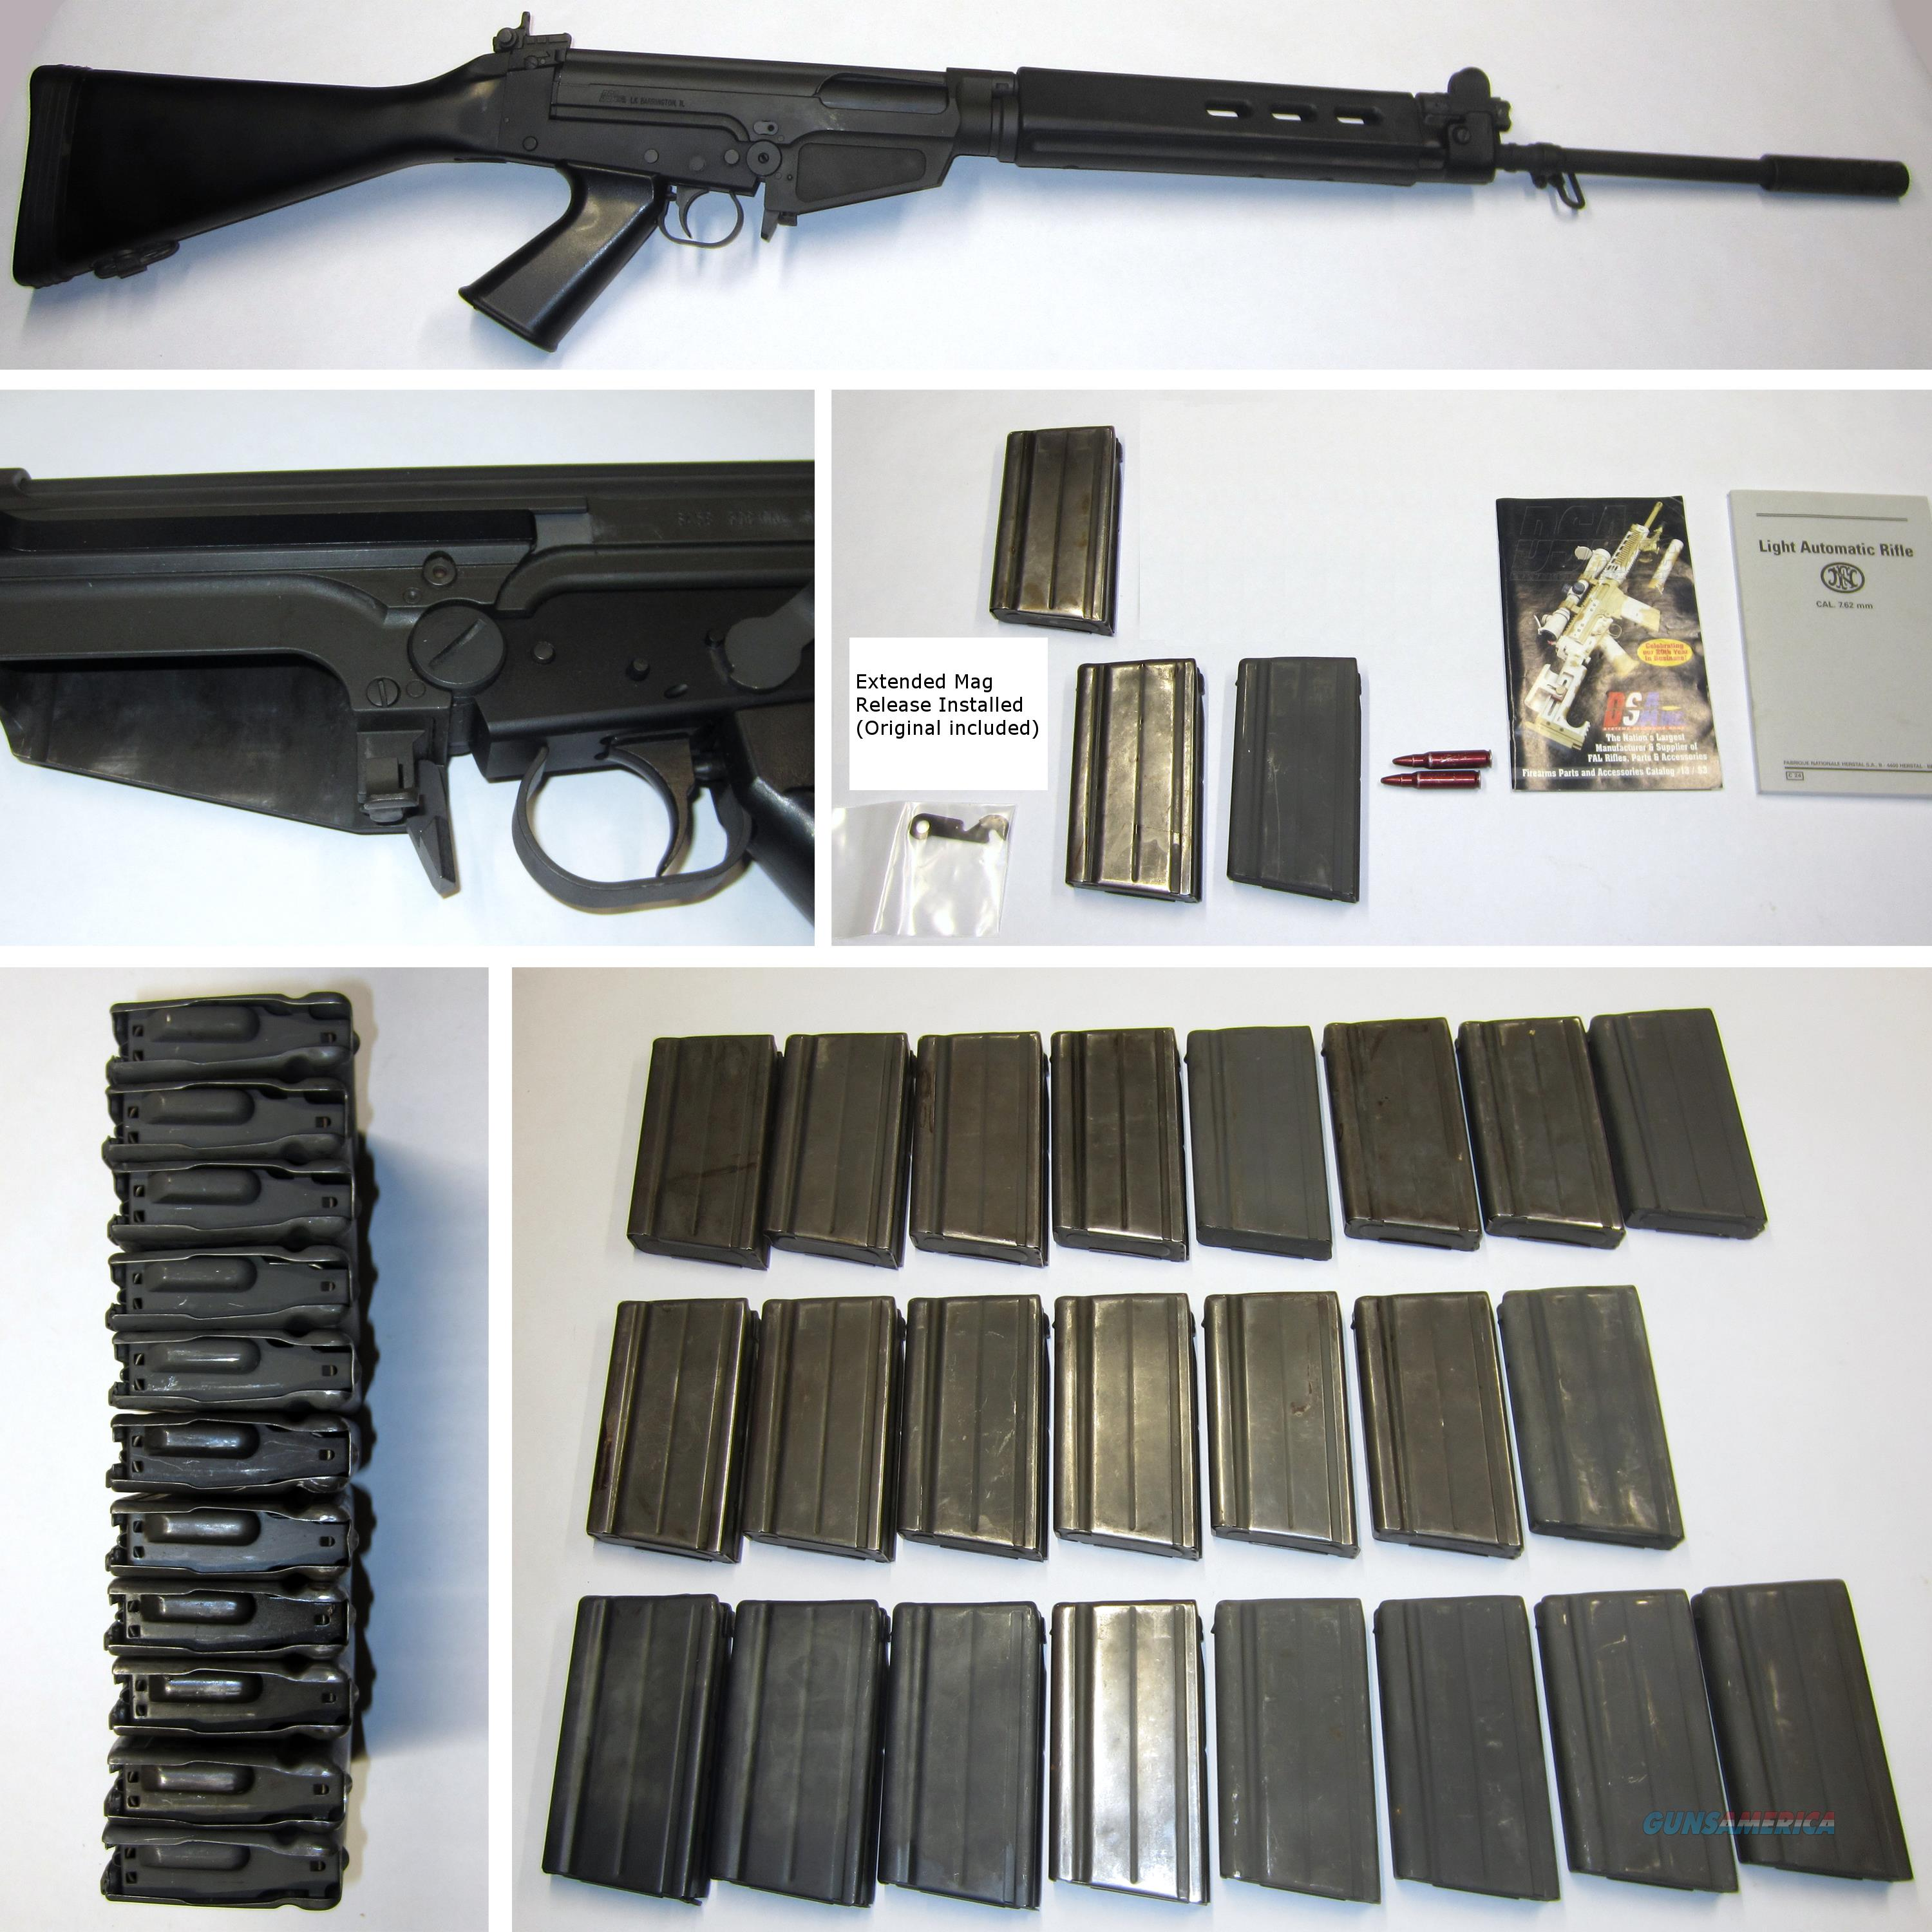 """DSA SA58 Metric FN FAL 21"""" w/Ext Mag Release, Also Have 37 Mags  Guns > Rifles > FNH - Fabrique Nationale (FN) Rifles > Semi-auto > FAL Type"""